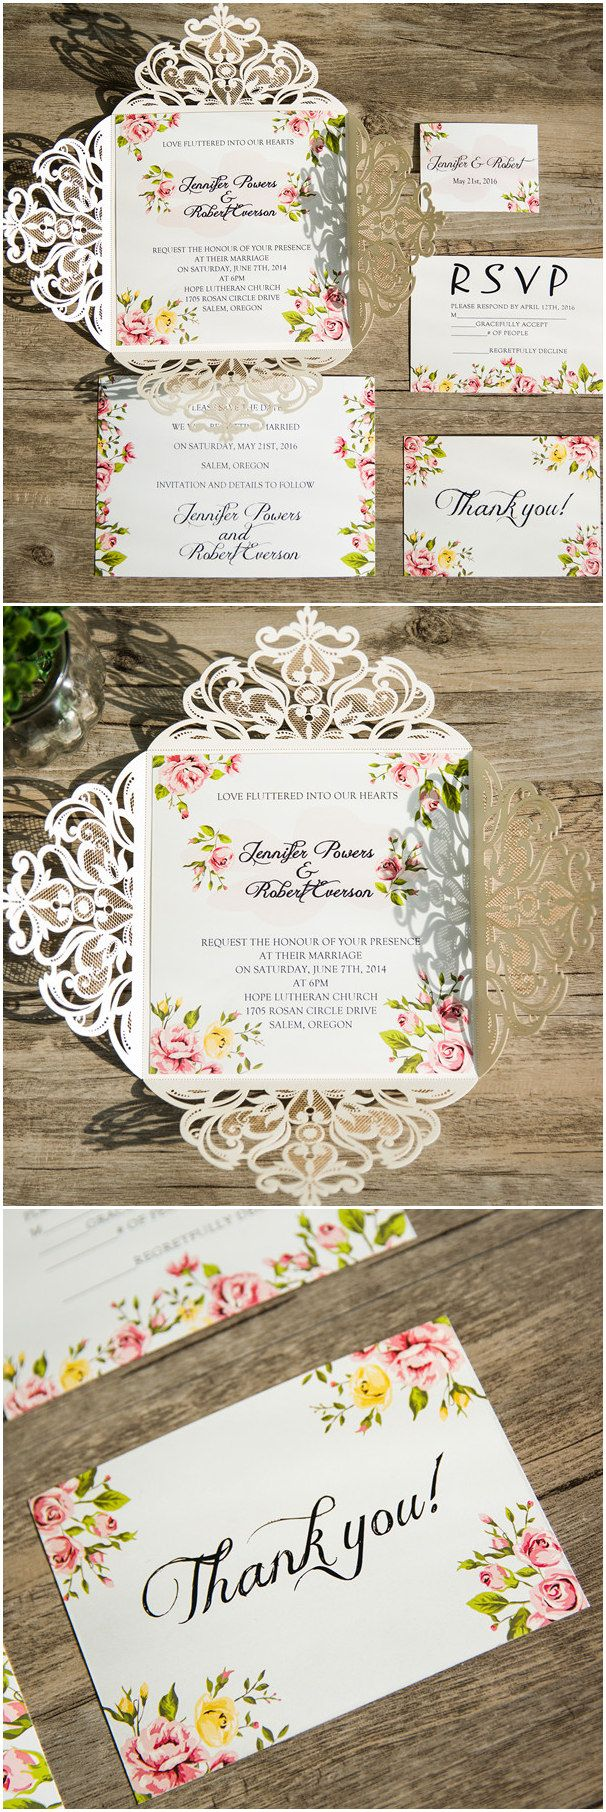 romantic floral prints laser cut wedding invitations for spring summer 2016 @elegantwinvites